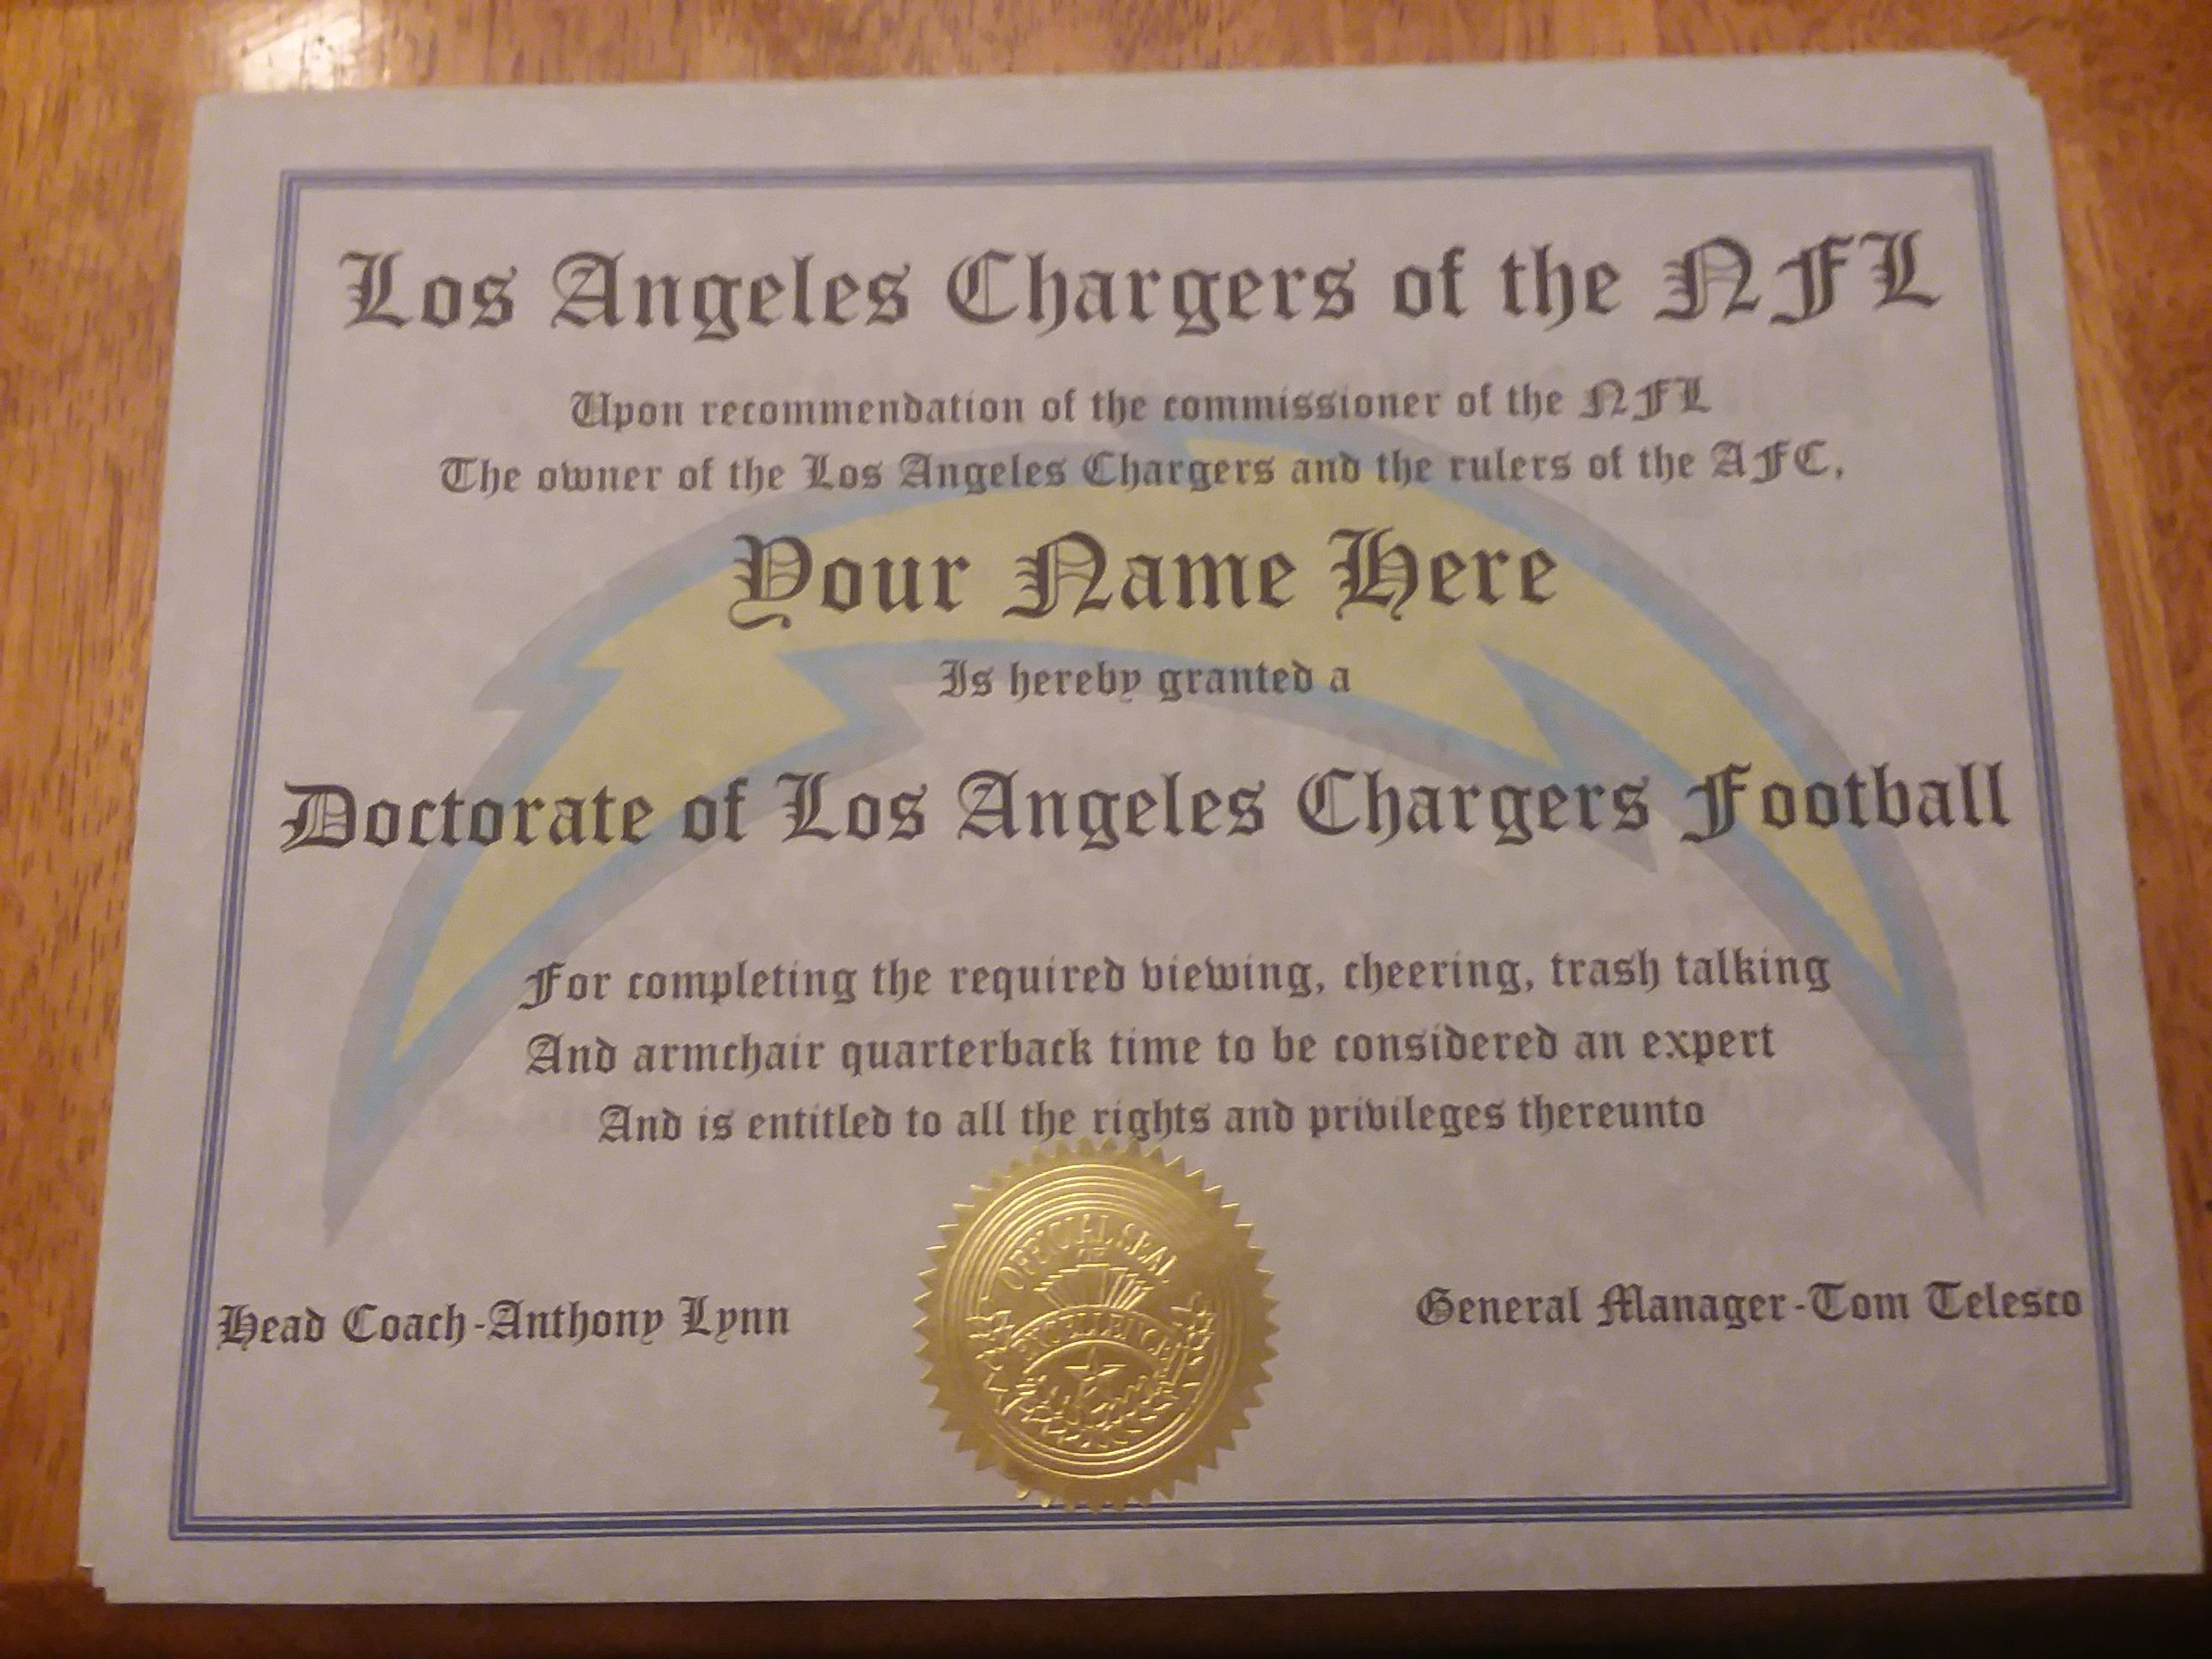 Los Angeles Chargers Football Doctorate Certificate Chargers Football Unique Items Products Los Angeles Chargers